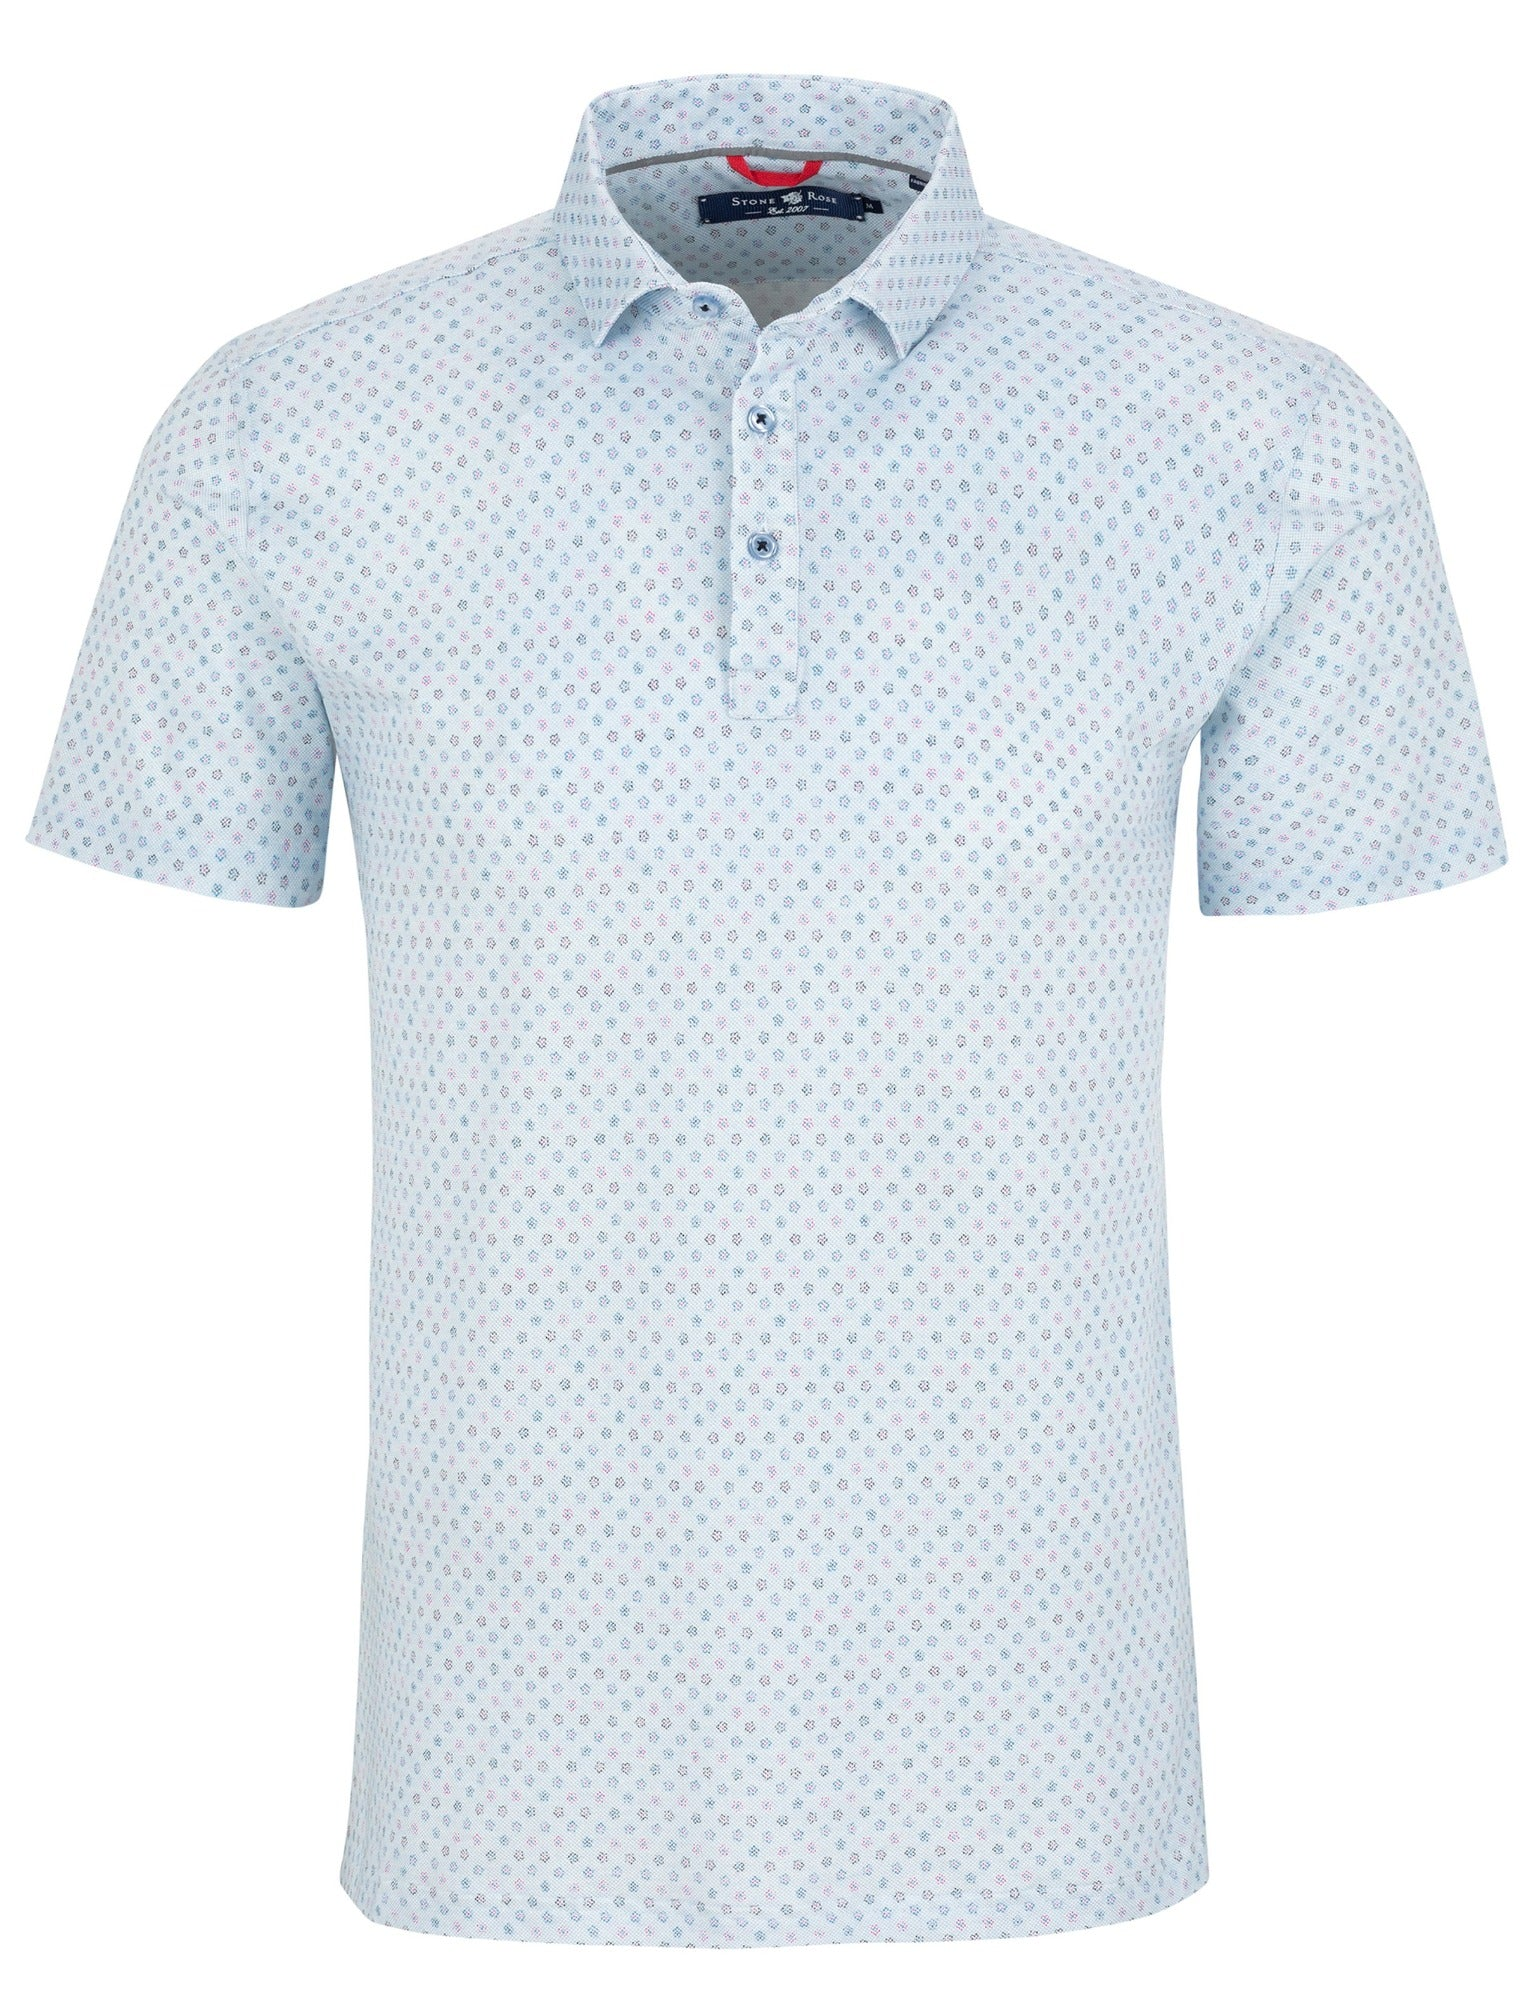 Light Blue Print T-Series Performance Pique Polo